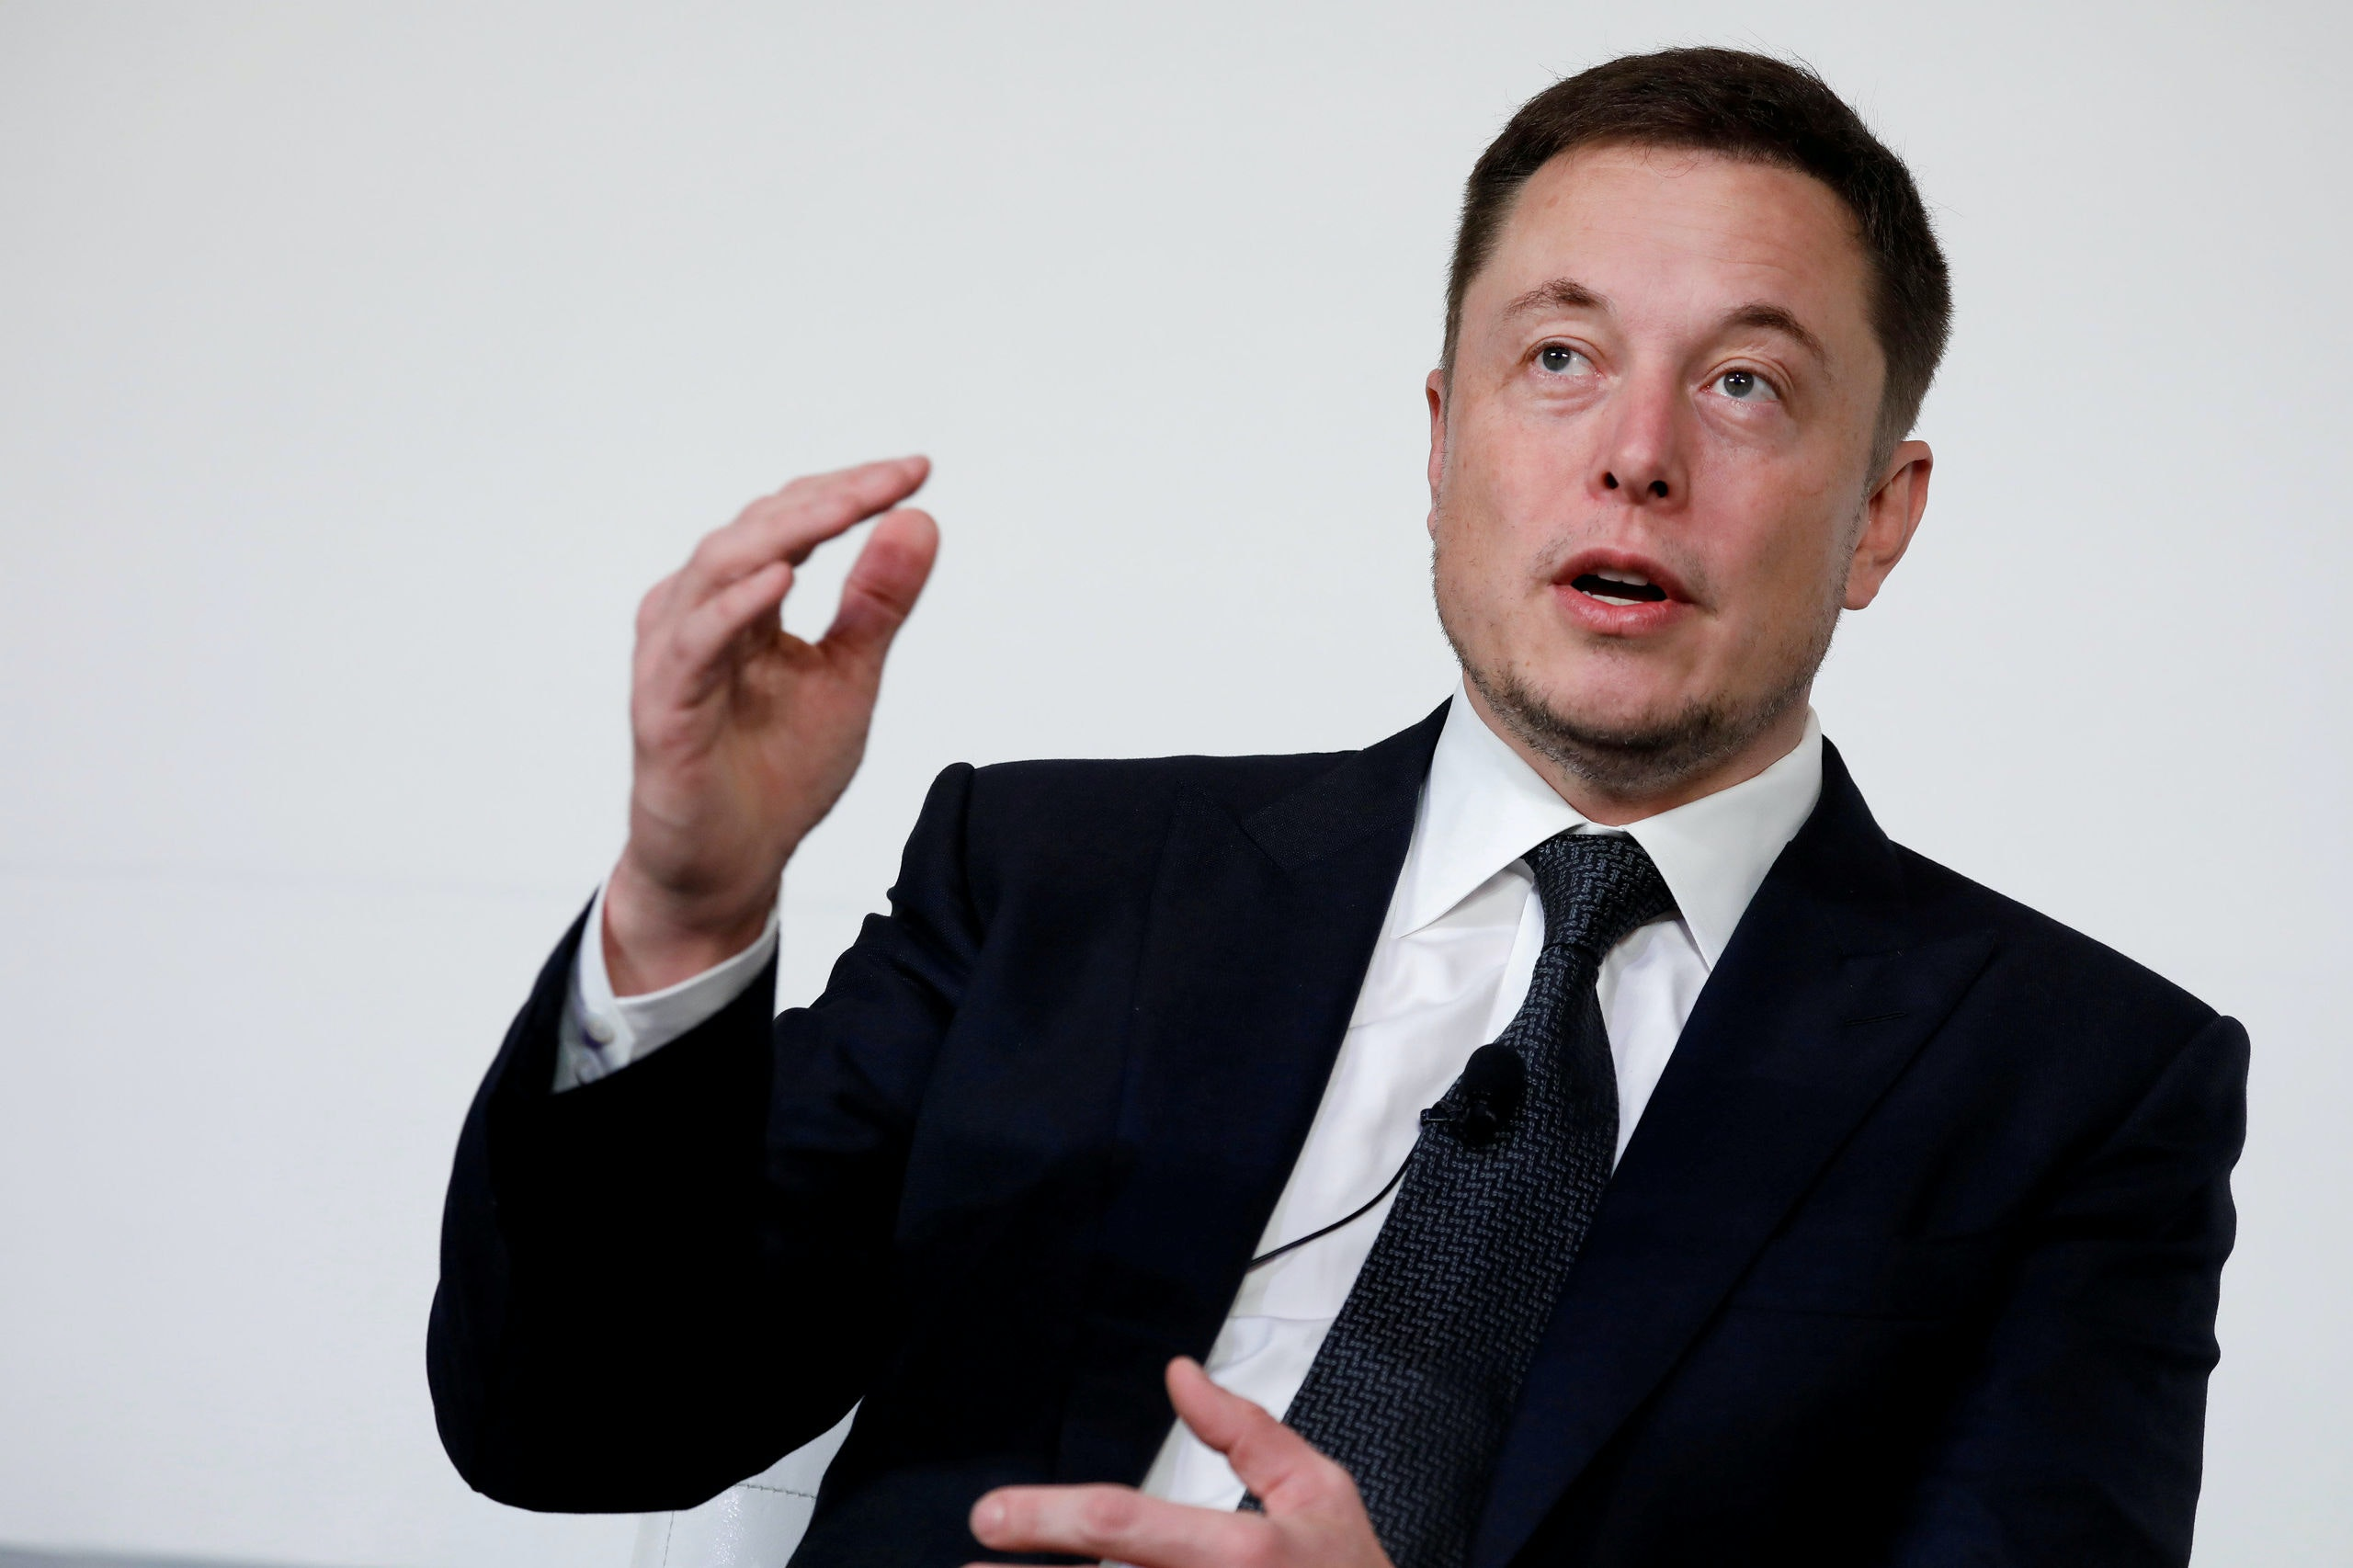 FILE PHOTO: Elon Musk, founder, CEO and lead designer at SpaceX and co-founder of Tesla, speaks at the International Space Station Research and Development Conference in Washington, U.S., July 19, 2017. REUTERS/Aaron P. Bernstein/File Photo